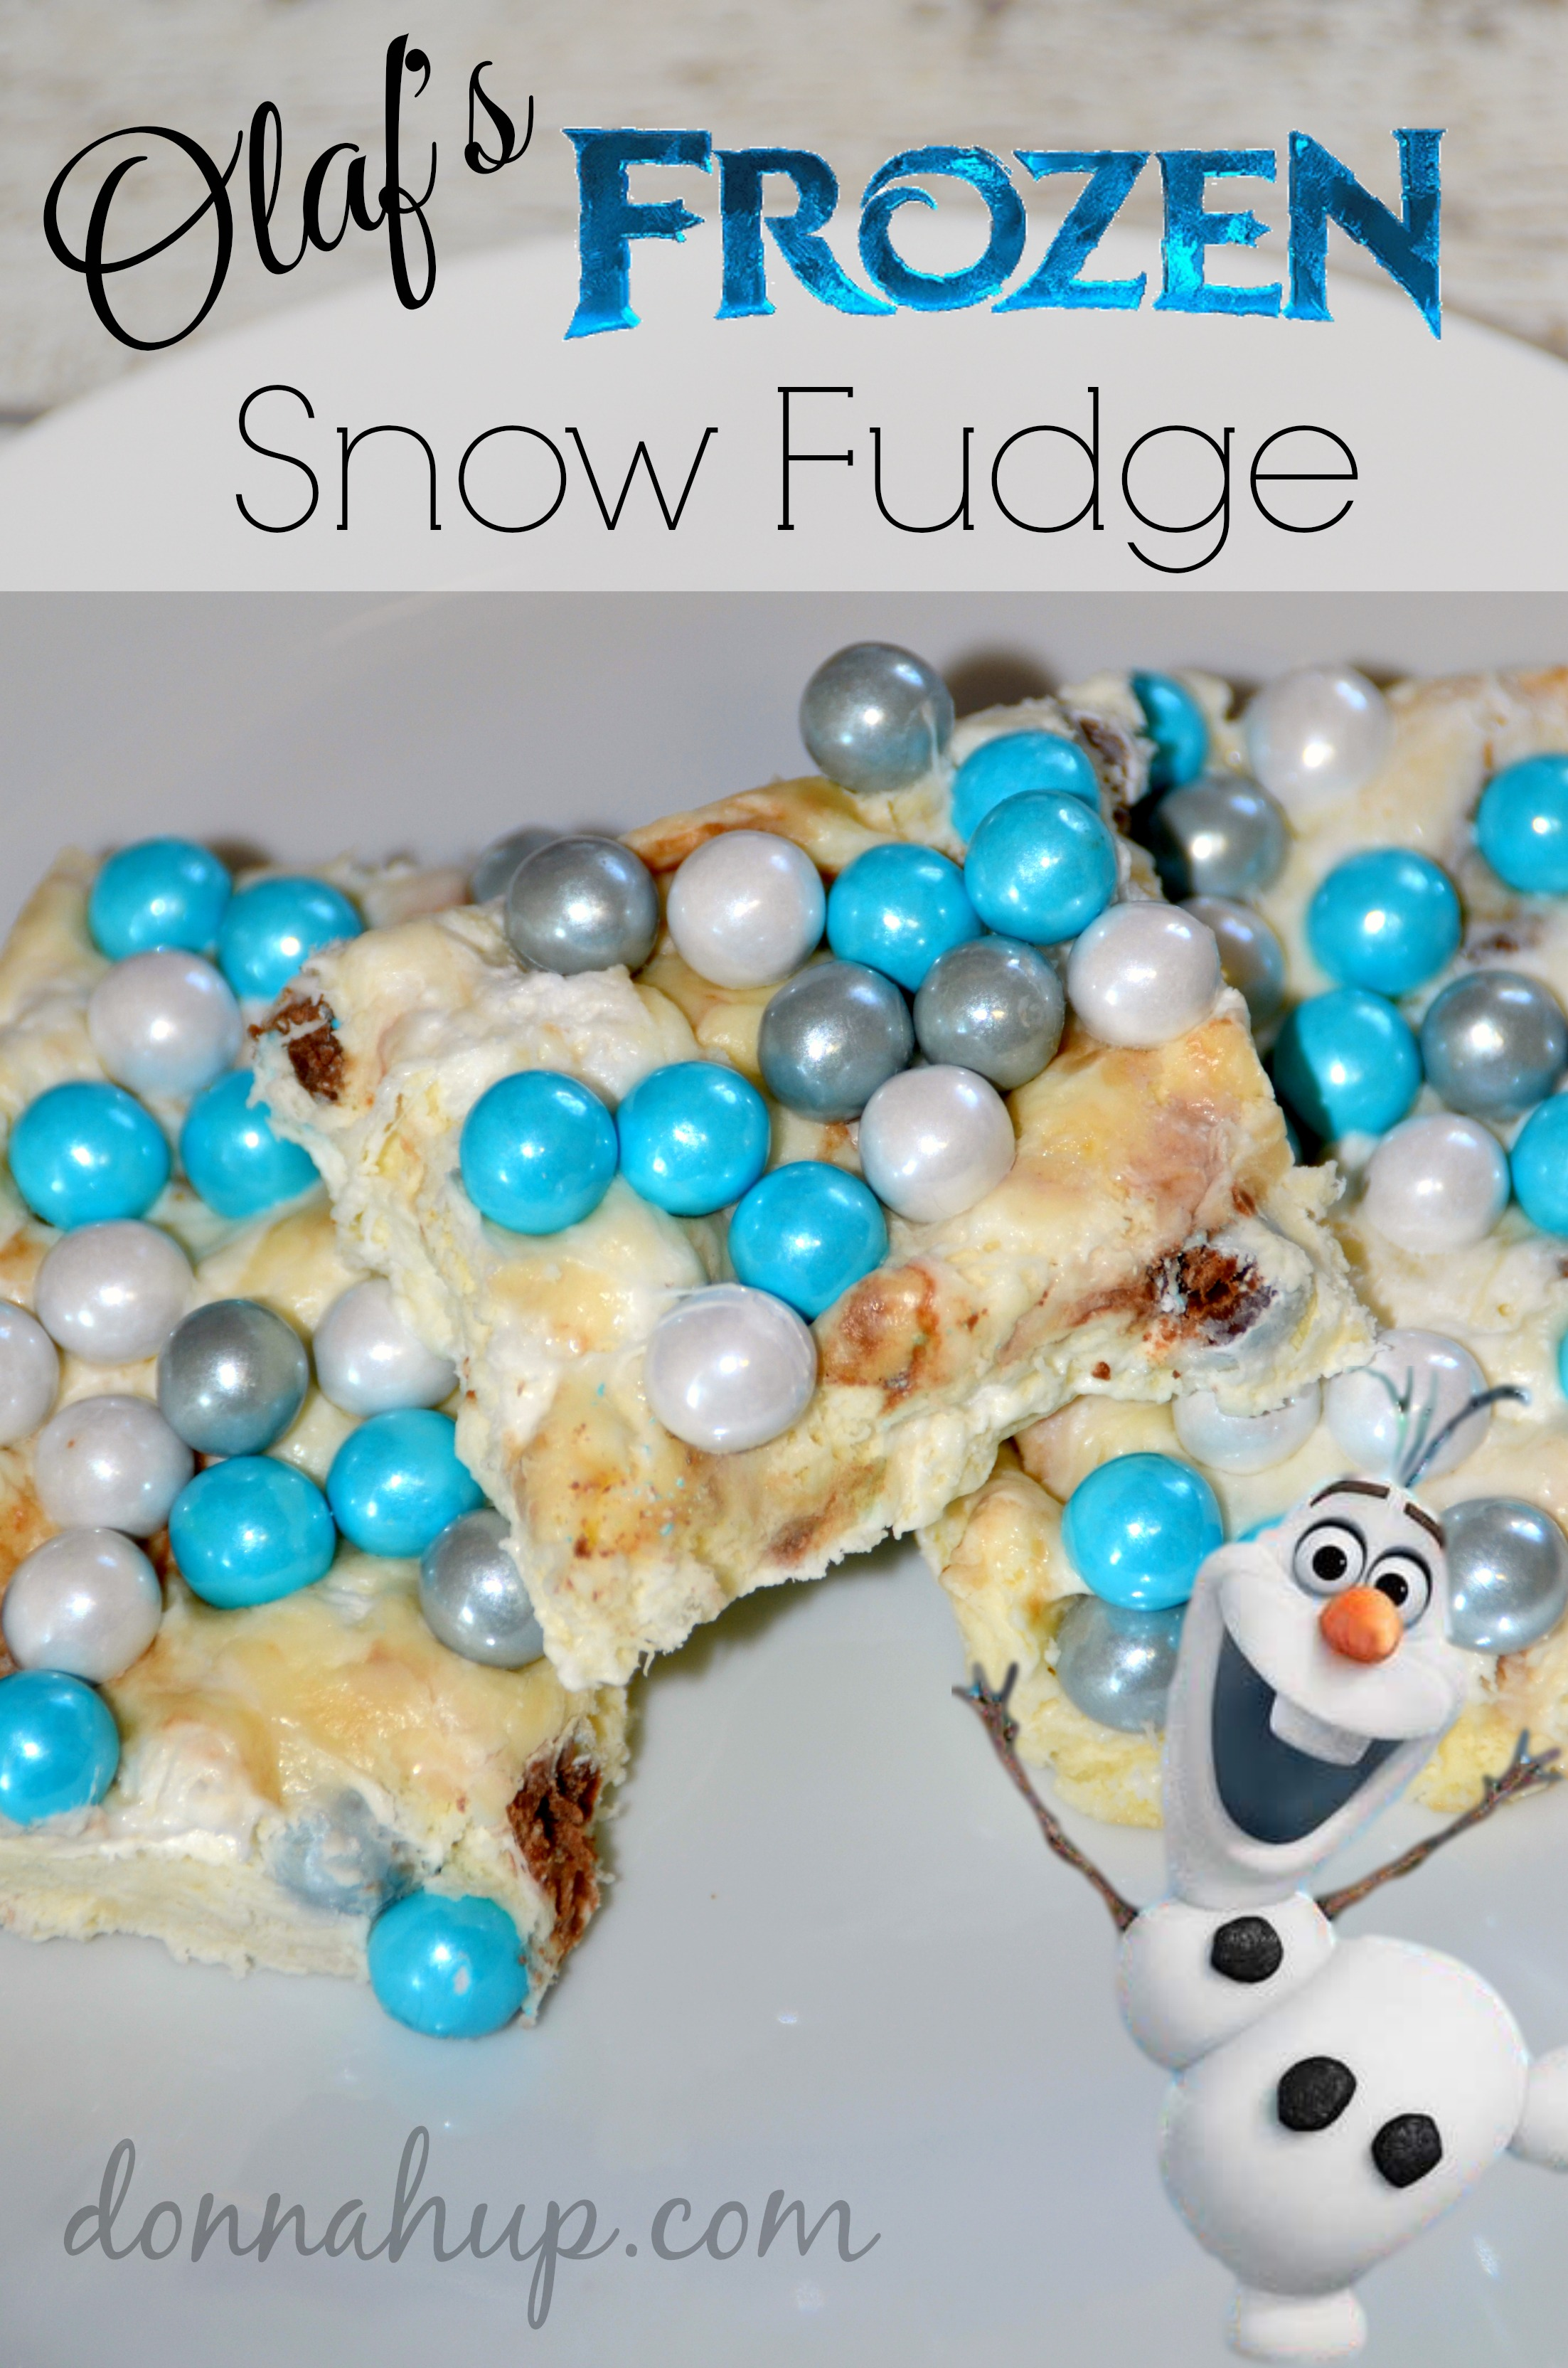 Olaf's Frozen Snow Fudge